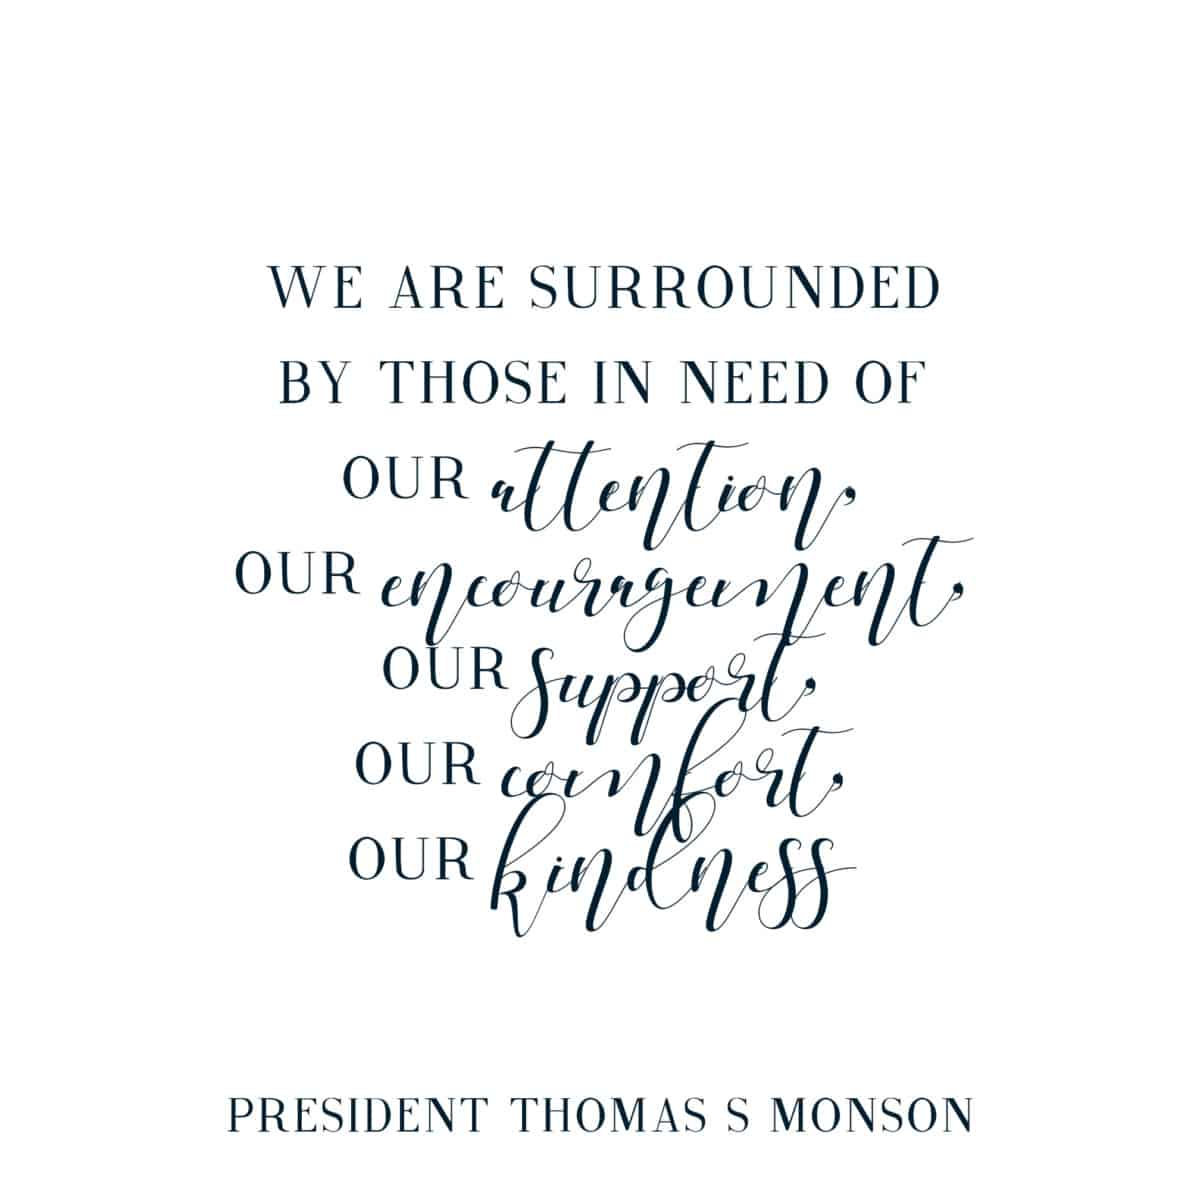 Thomas S Monson quote from the December Visiting Teaching Message